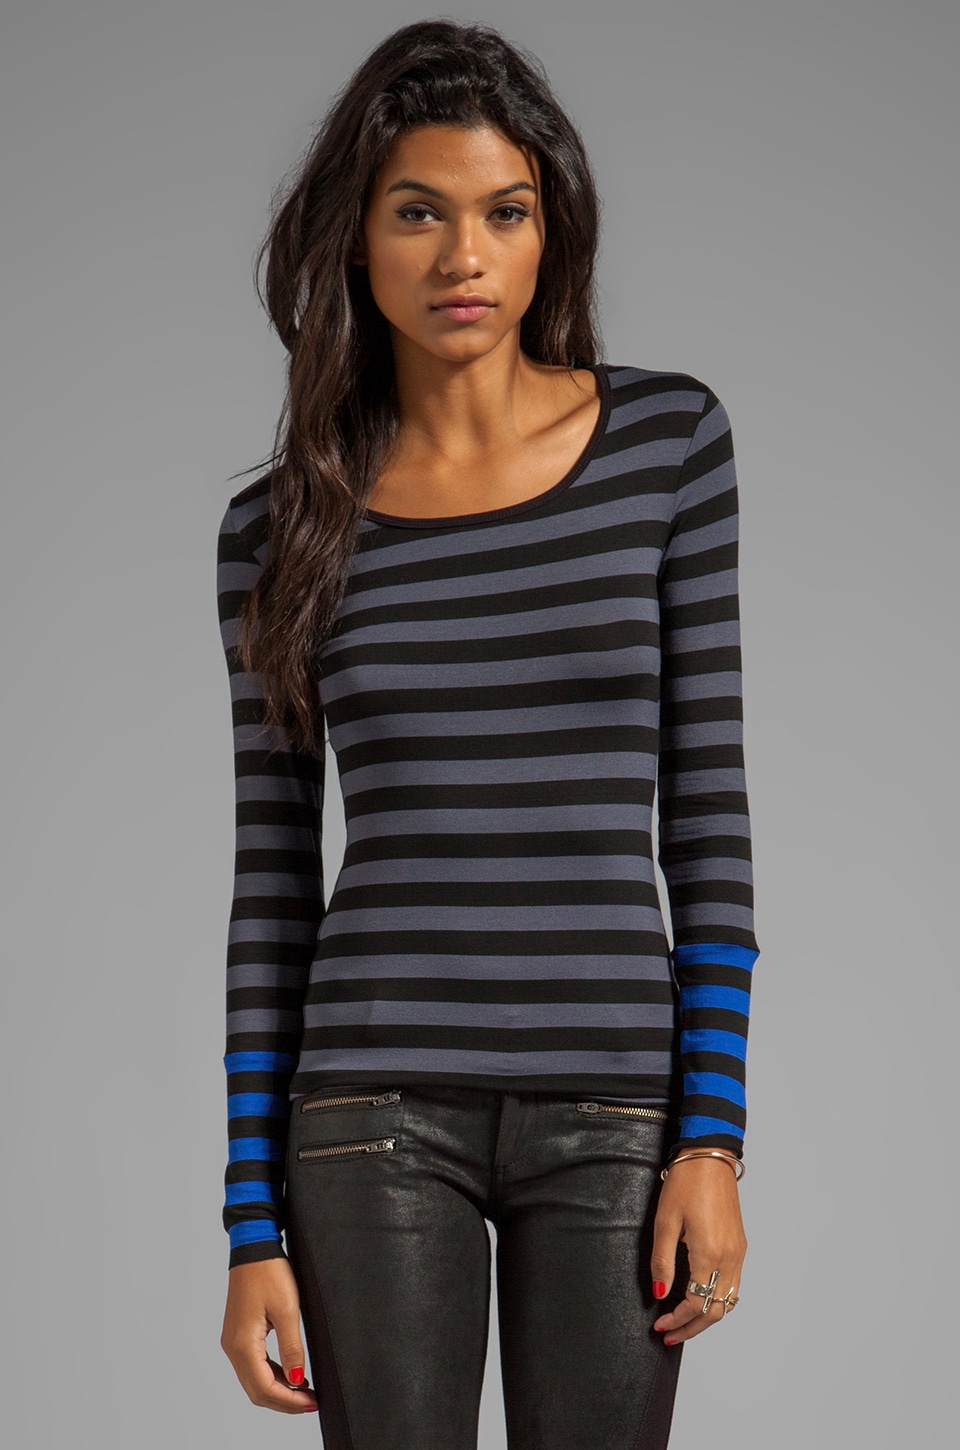 Bailey 44 Tech Neck Striped Top in Grey/Blue